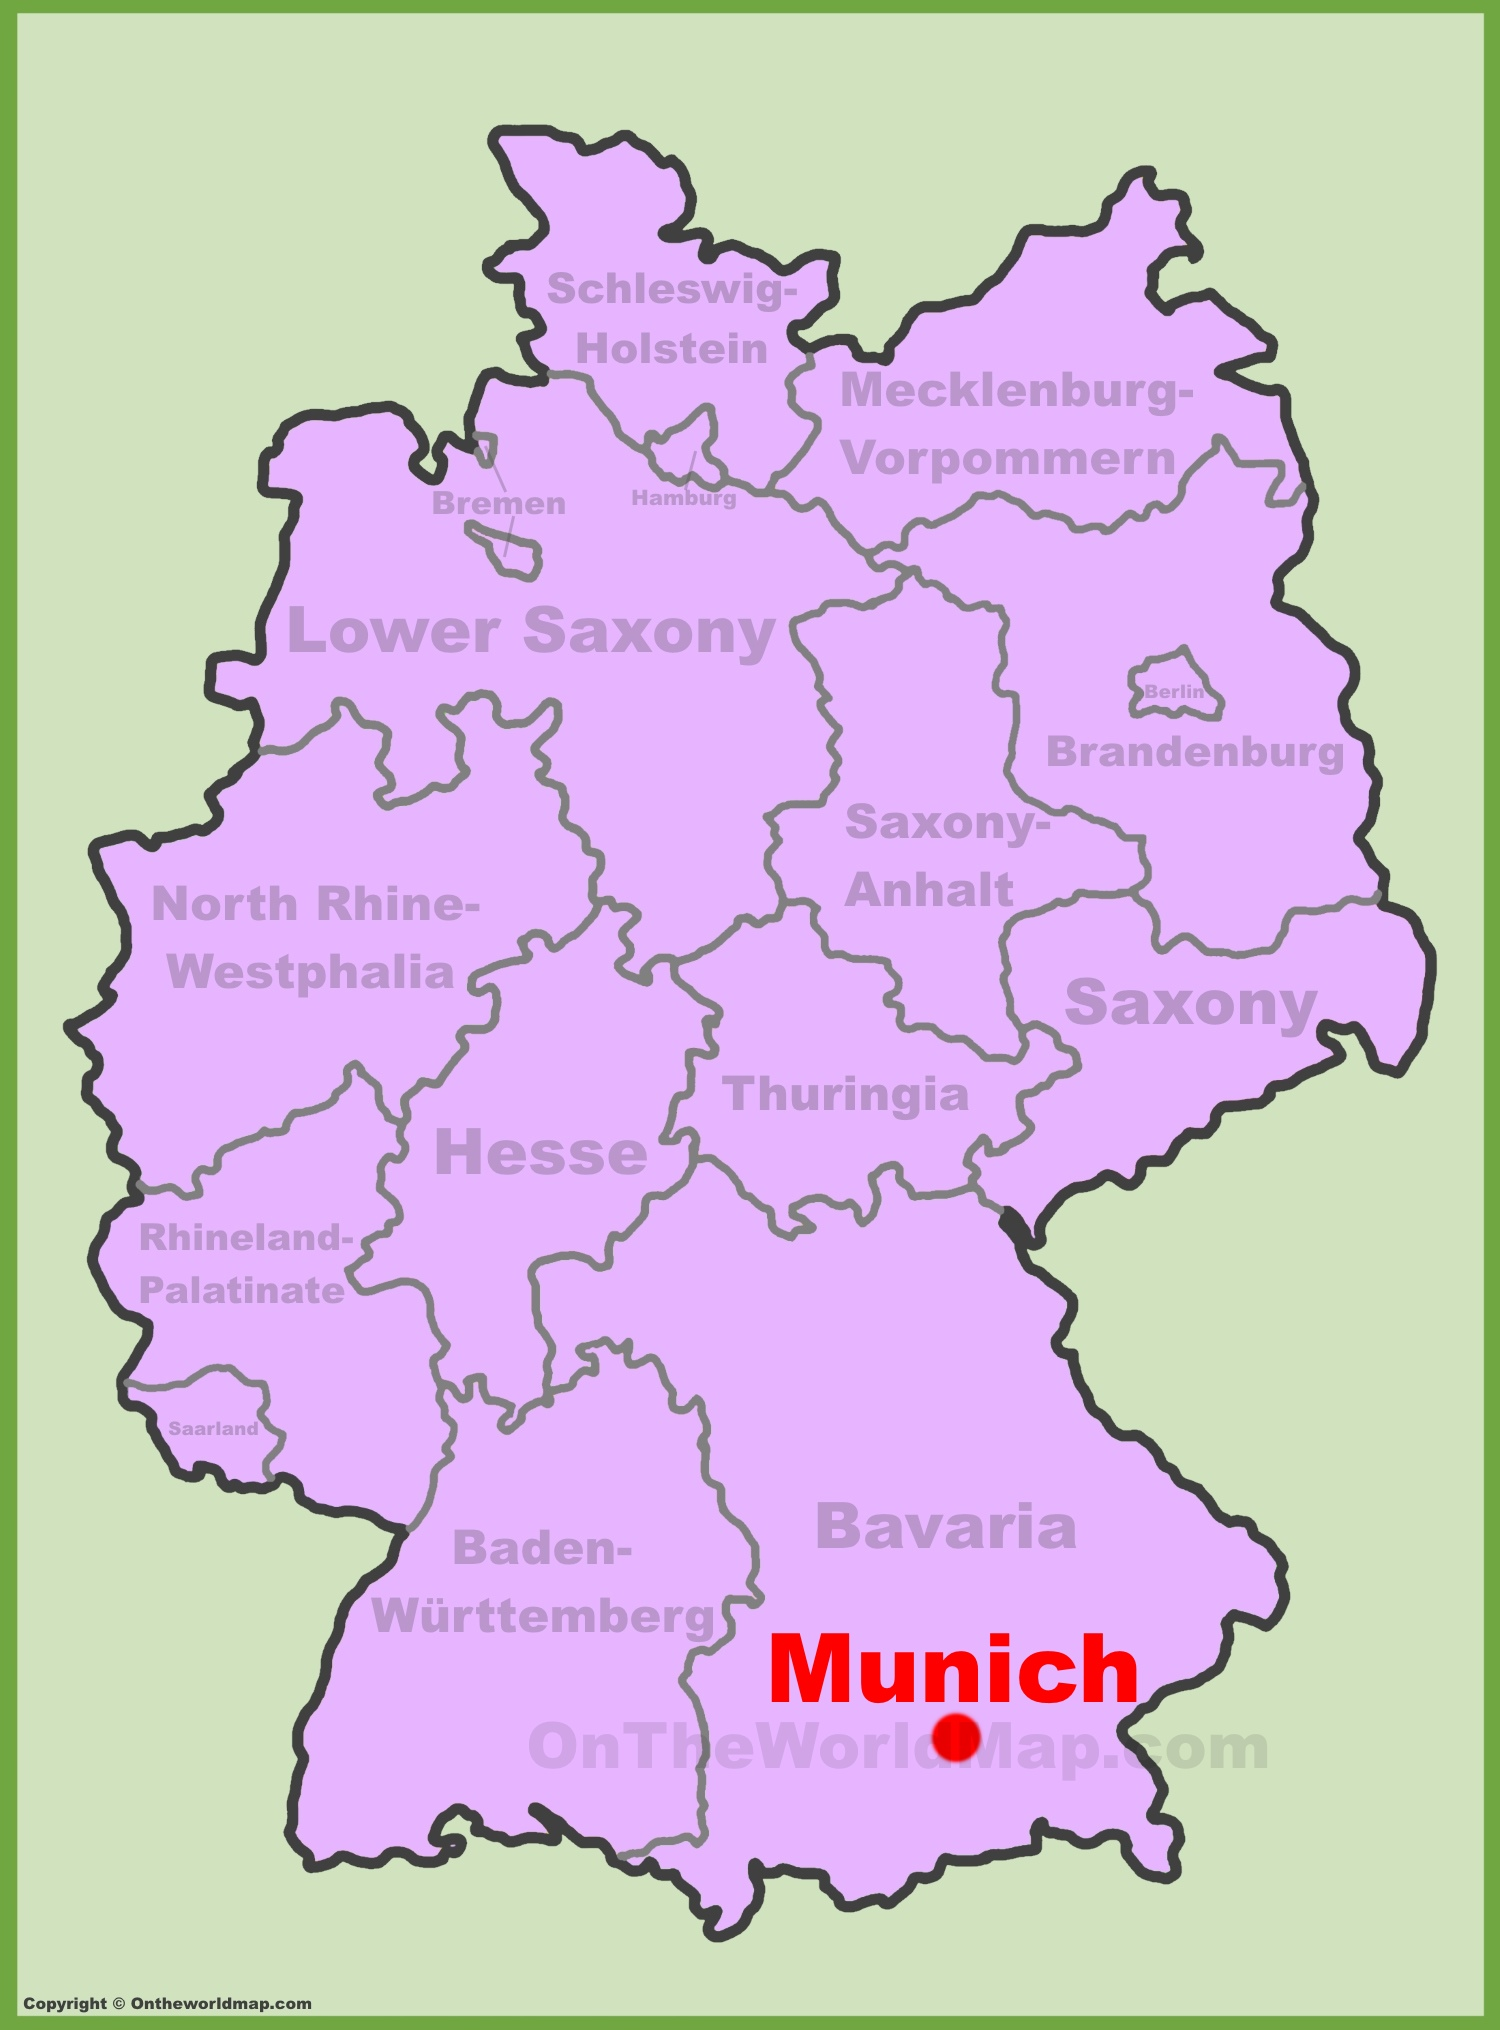 Munich Maps | Germany | Maps of Munich (München)